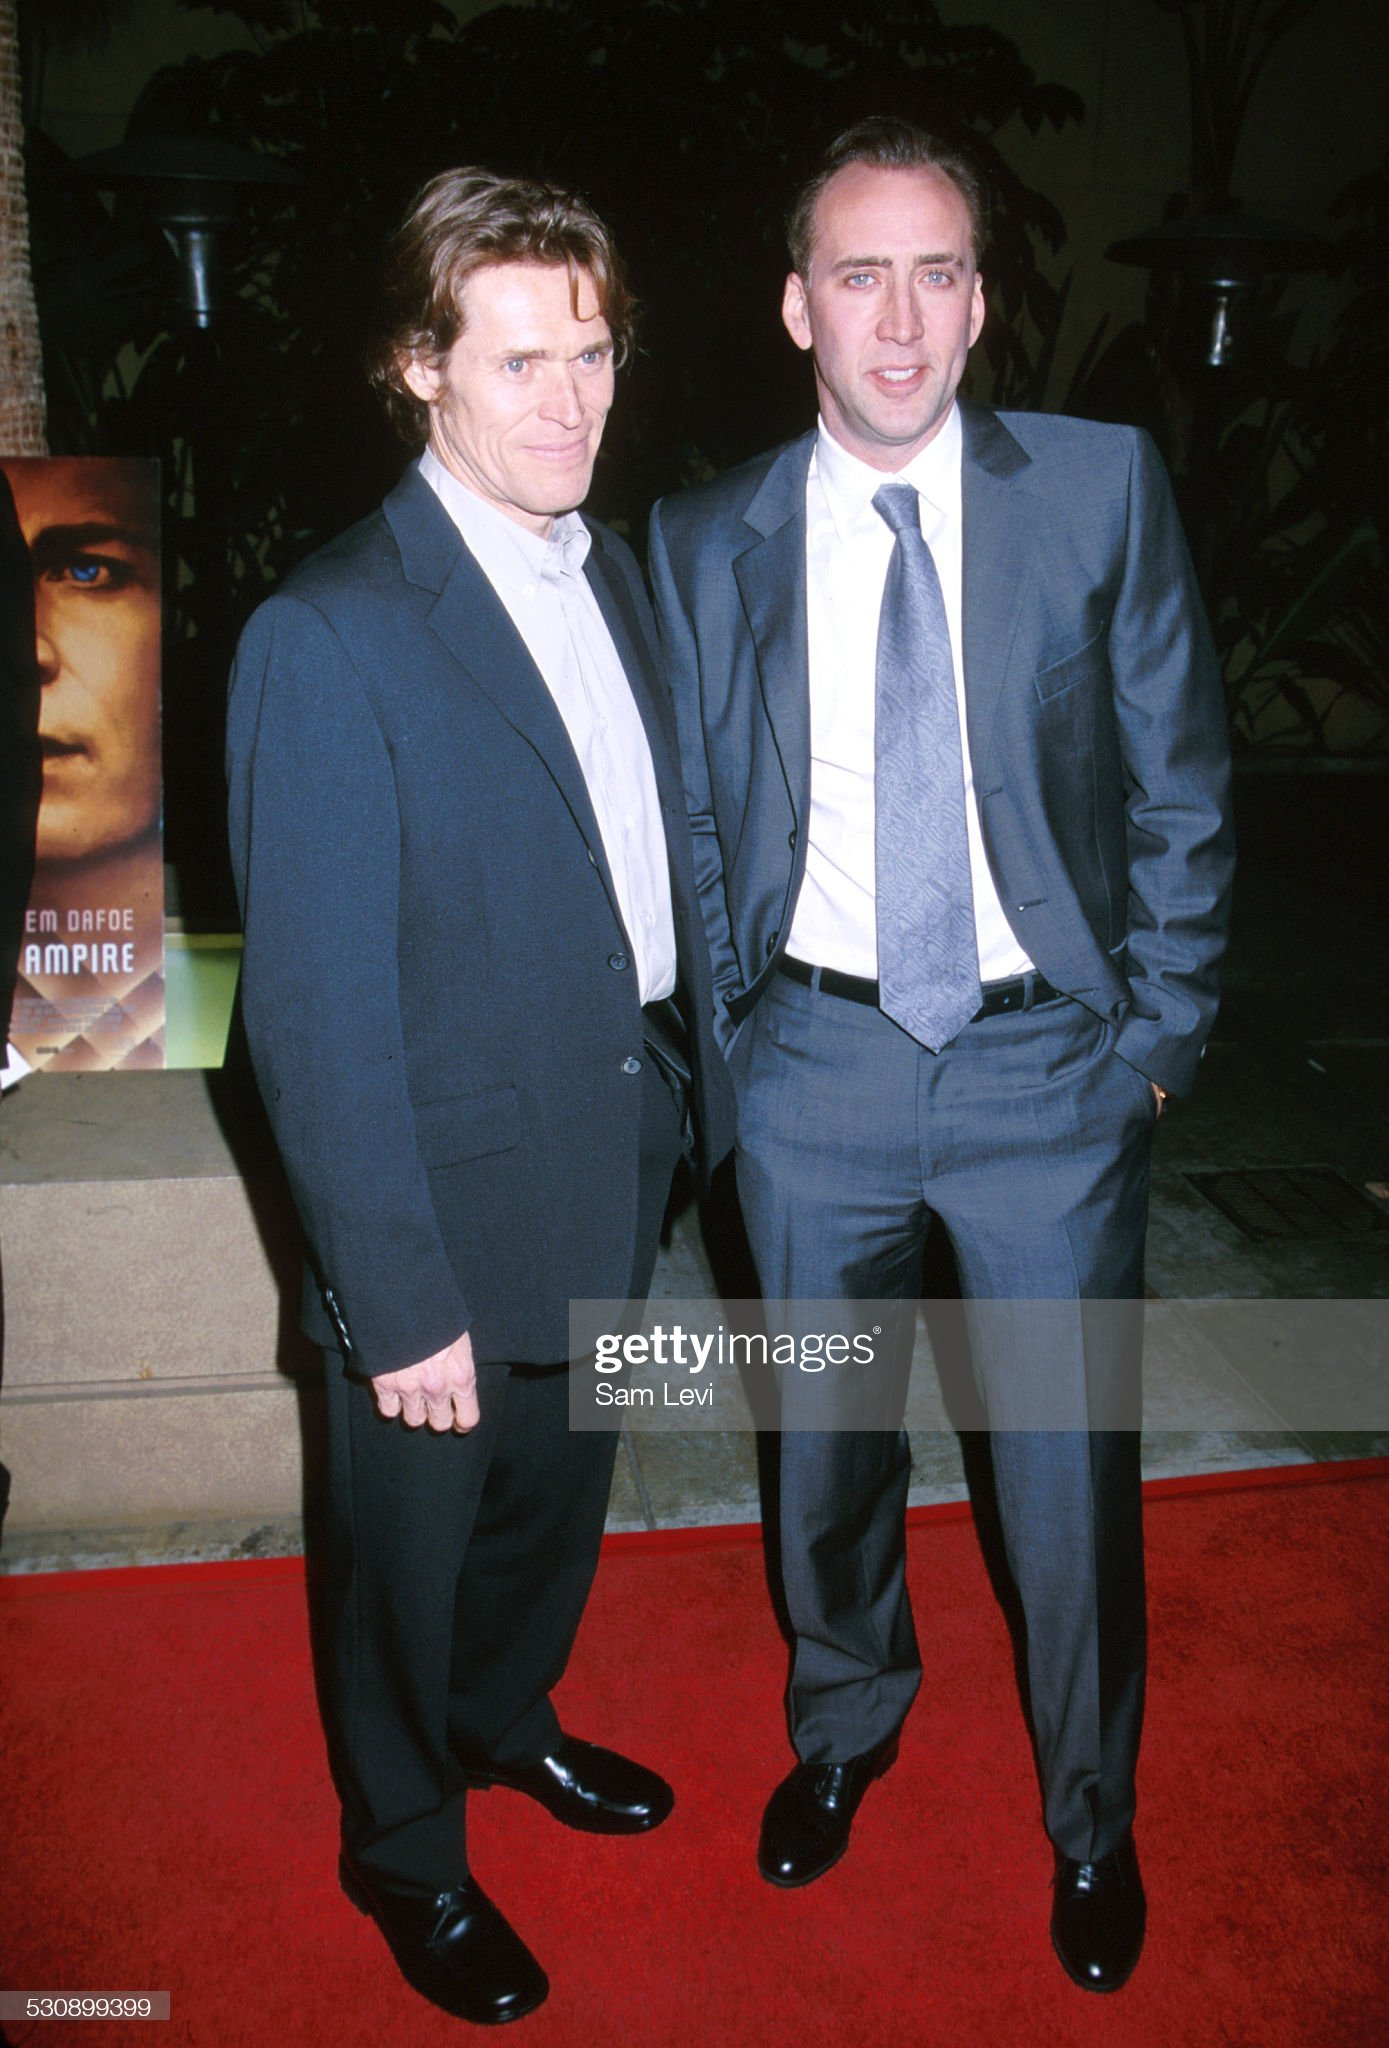 ¿Cuánto mide Willem Dafoe? - Altura - Real height Willem-dafoe-nicolas-cage-during-shadow-of-the-vampire-los-angeles-picture-id530899399?s=2048x2048